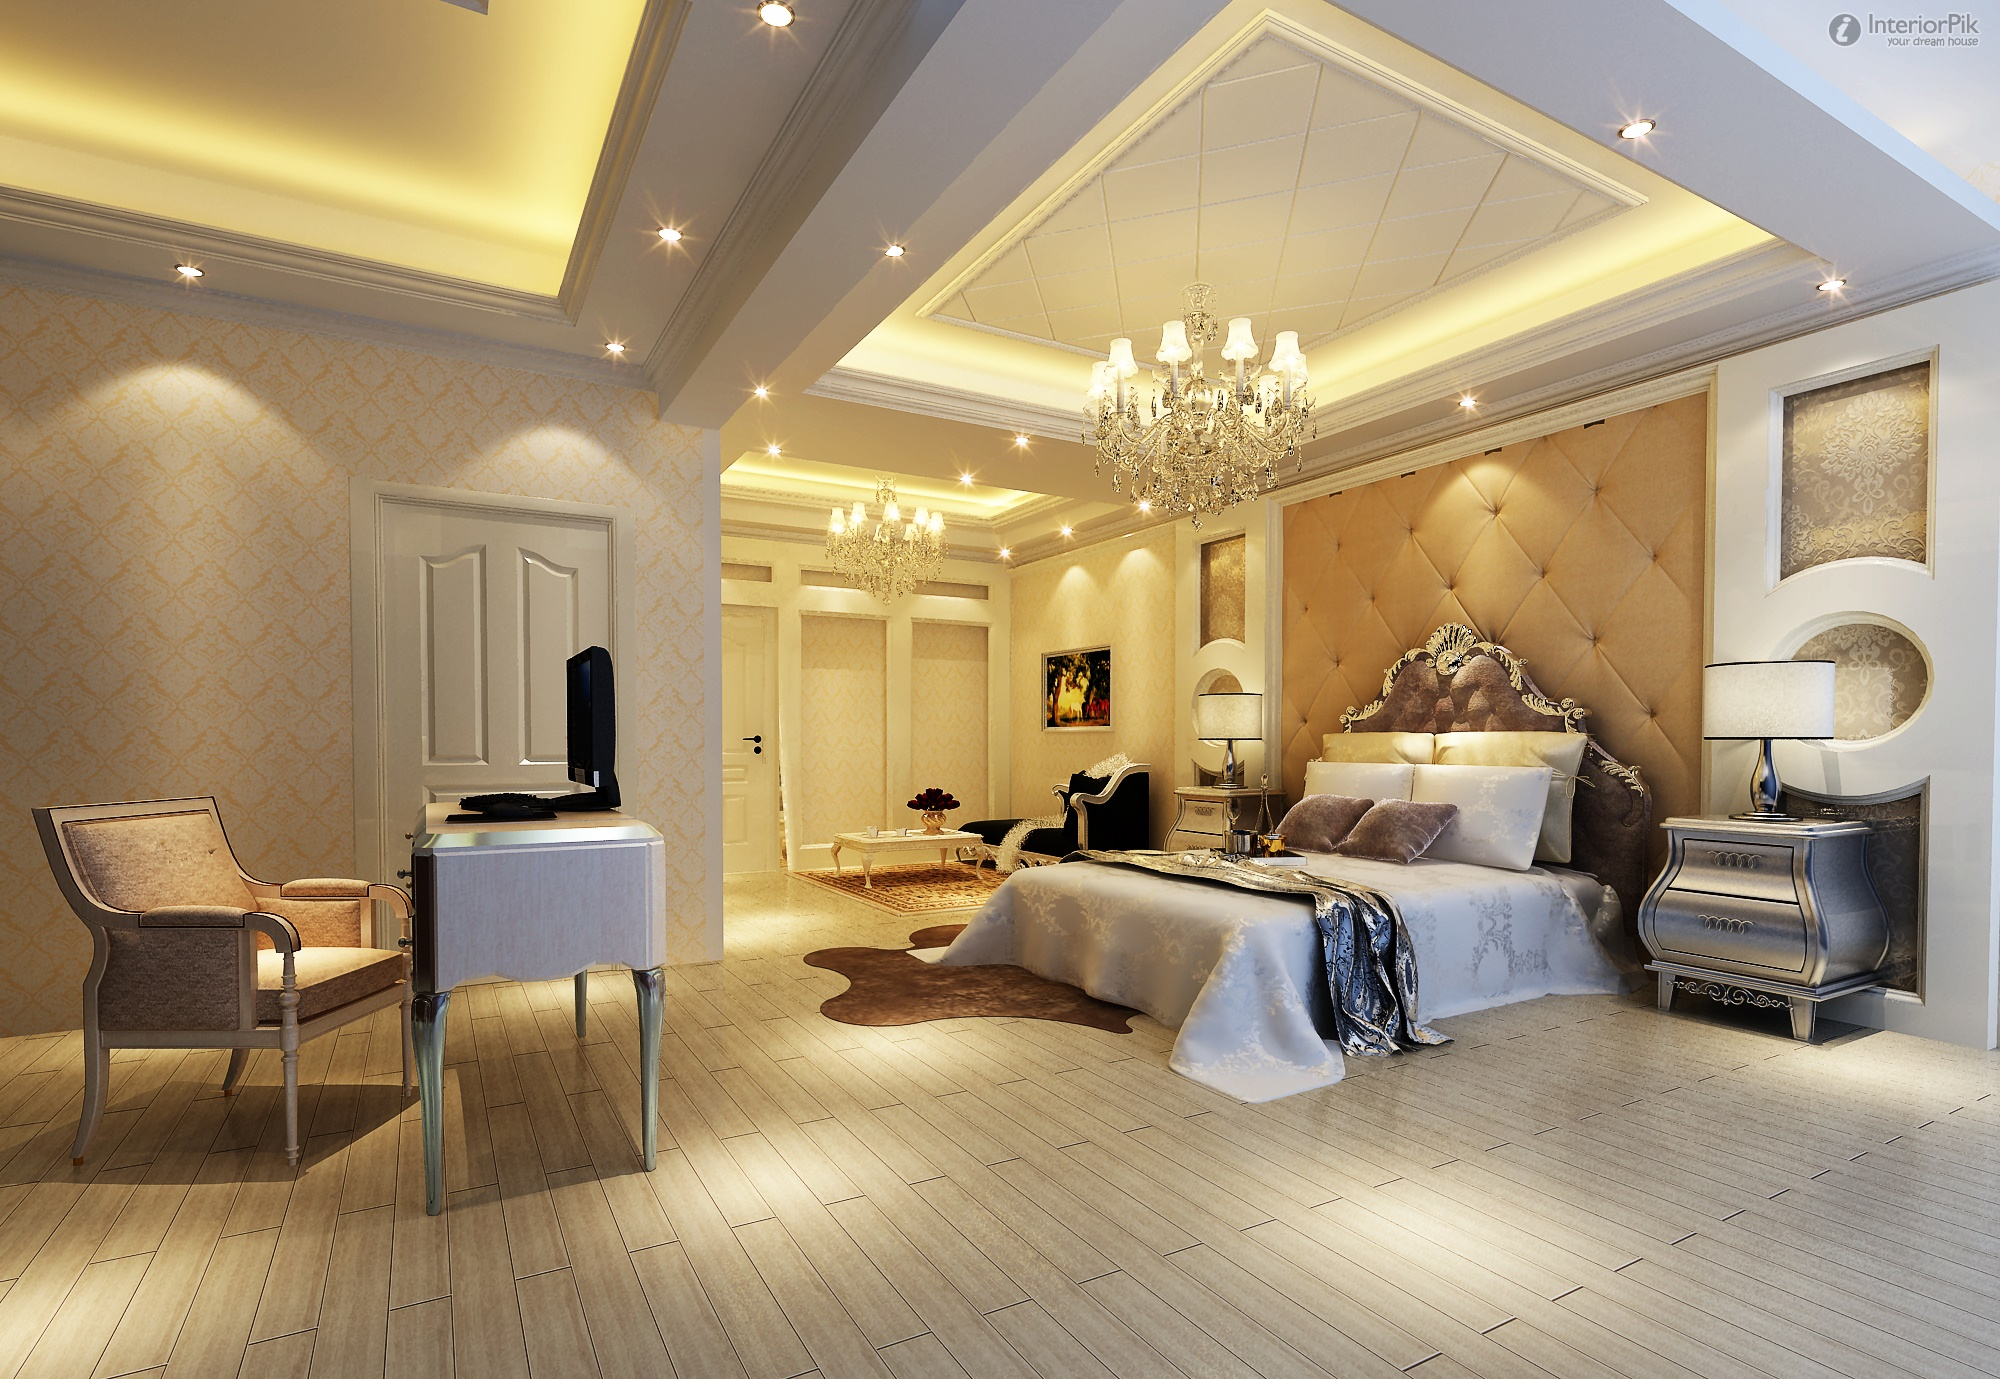 Big Bedroom Decorating Ideas Big Bedrooms 8 Decoration Inspiration Enhancedhomes Org